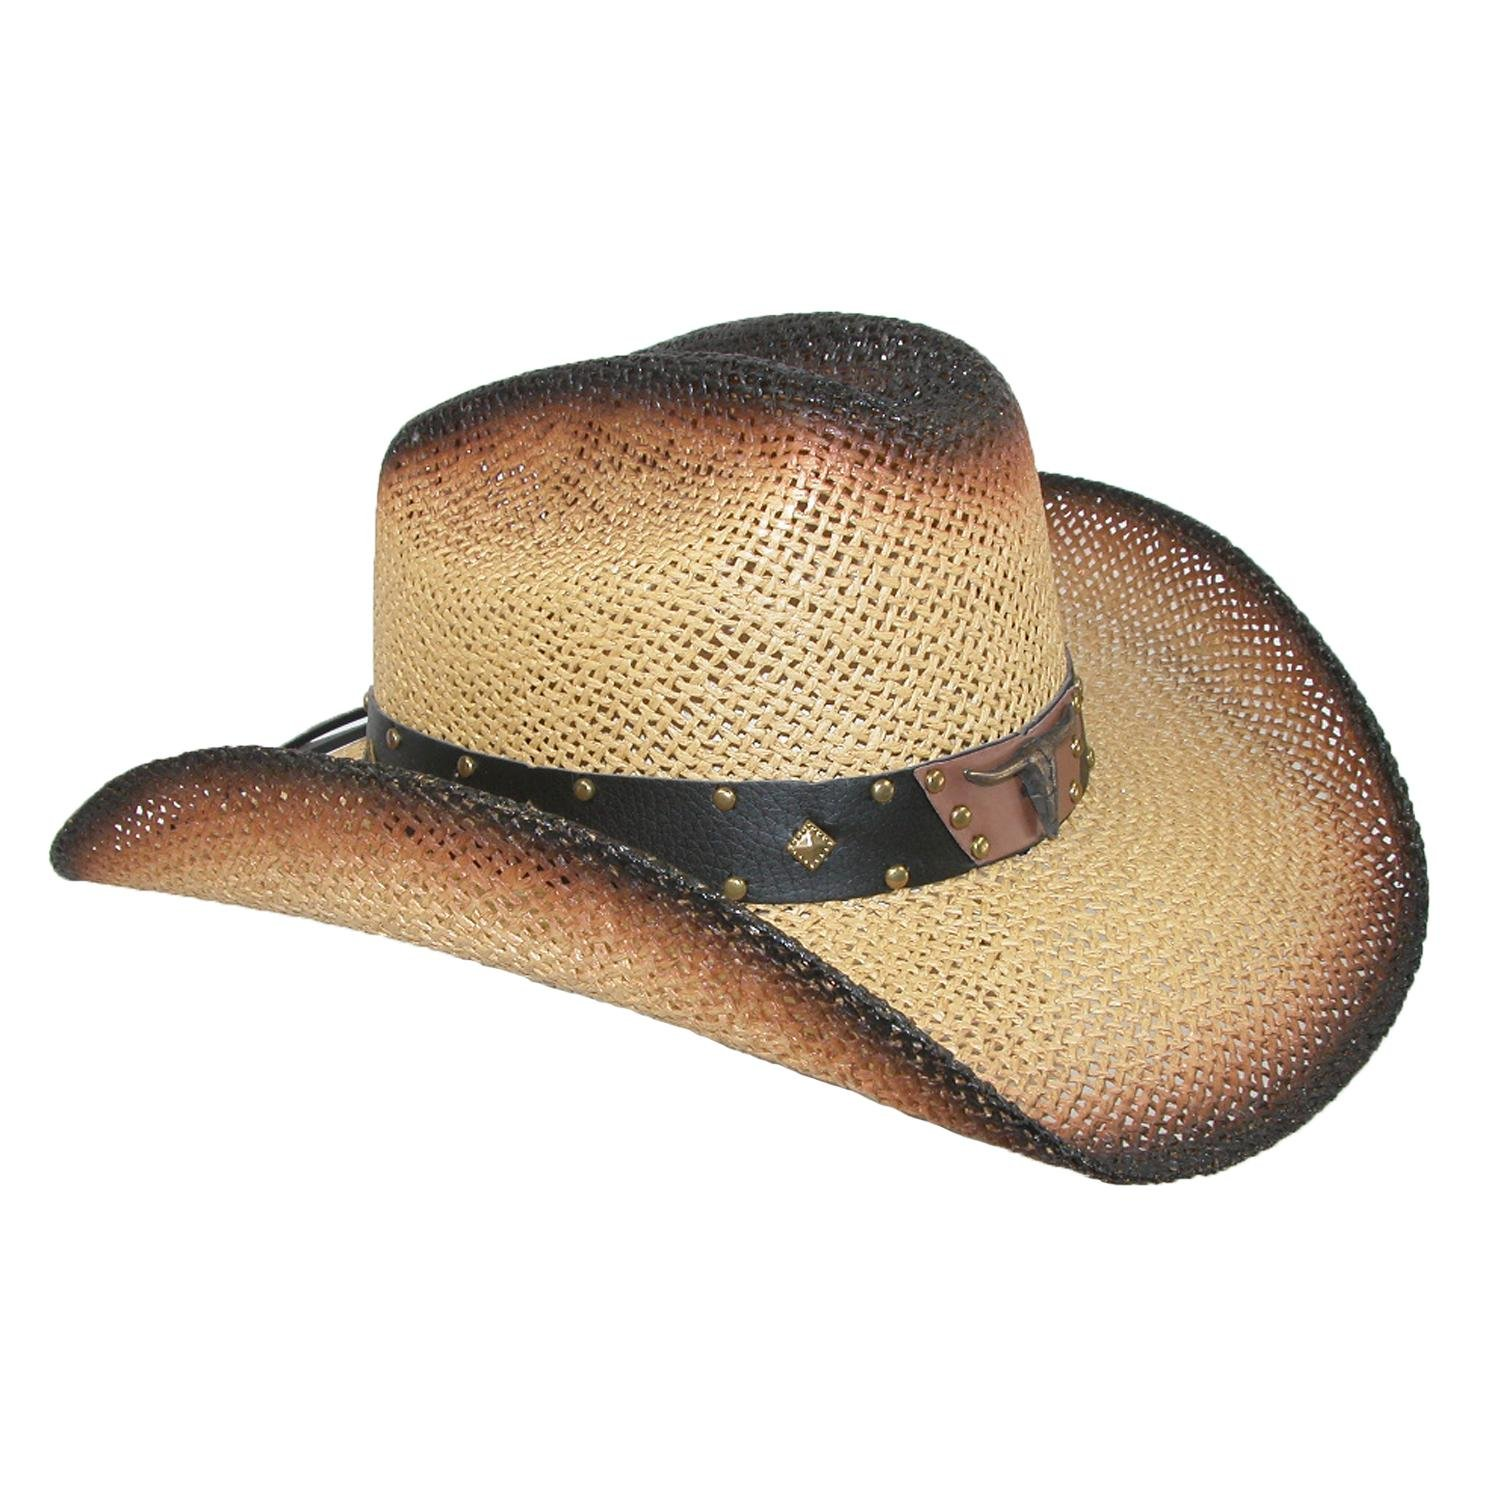 Wild Bill Hats Men s Straw Long Horn Western Cowboy Hat Beige at Amazon  Men s Clothing store  be6f0f46fa2